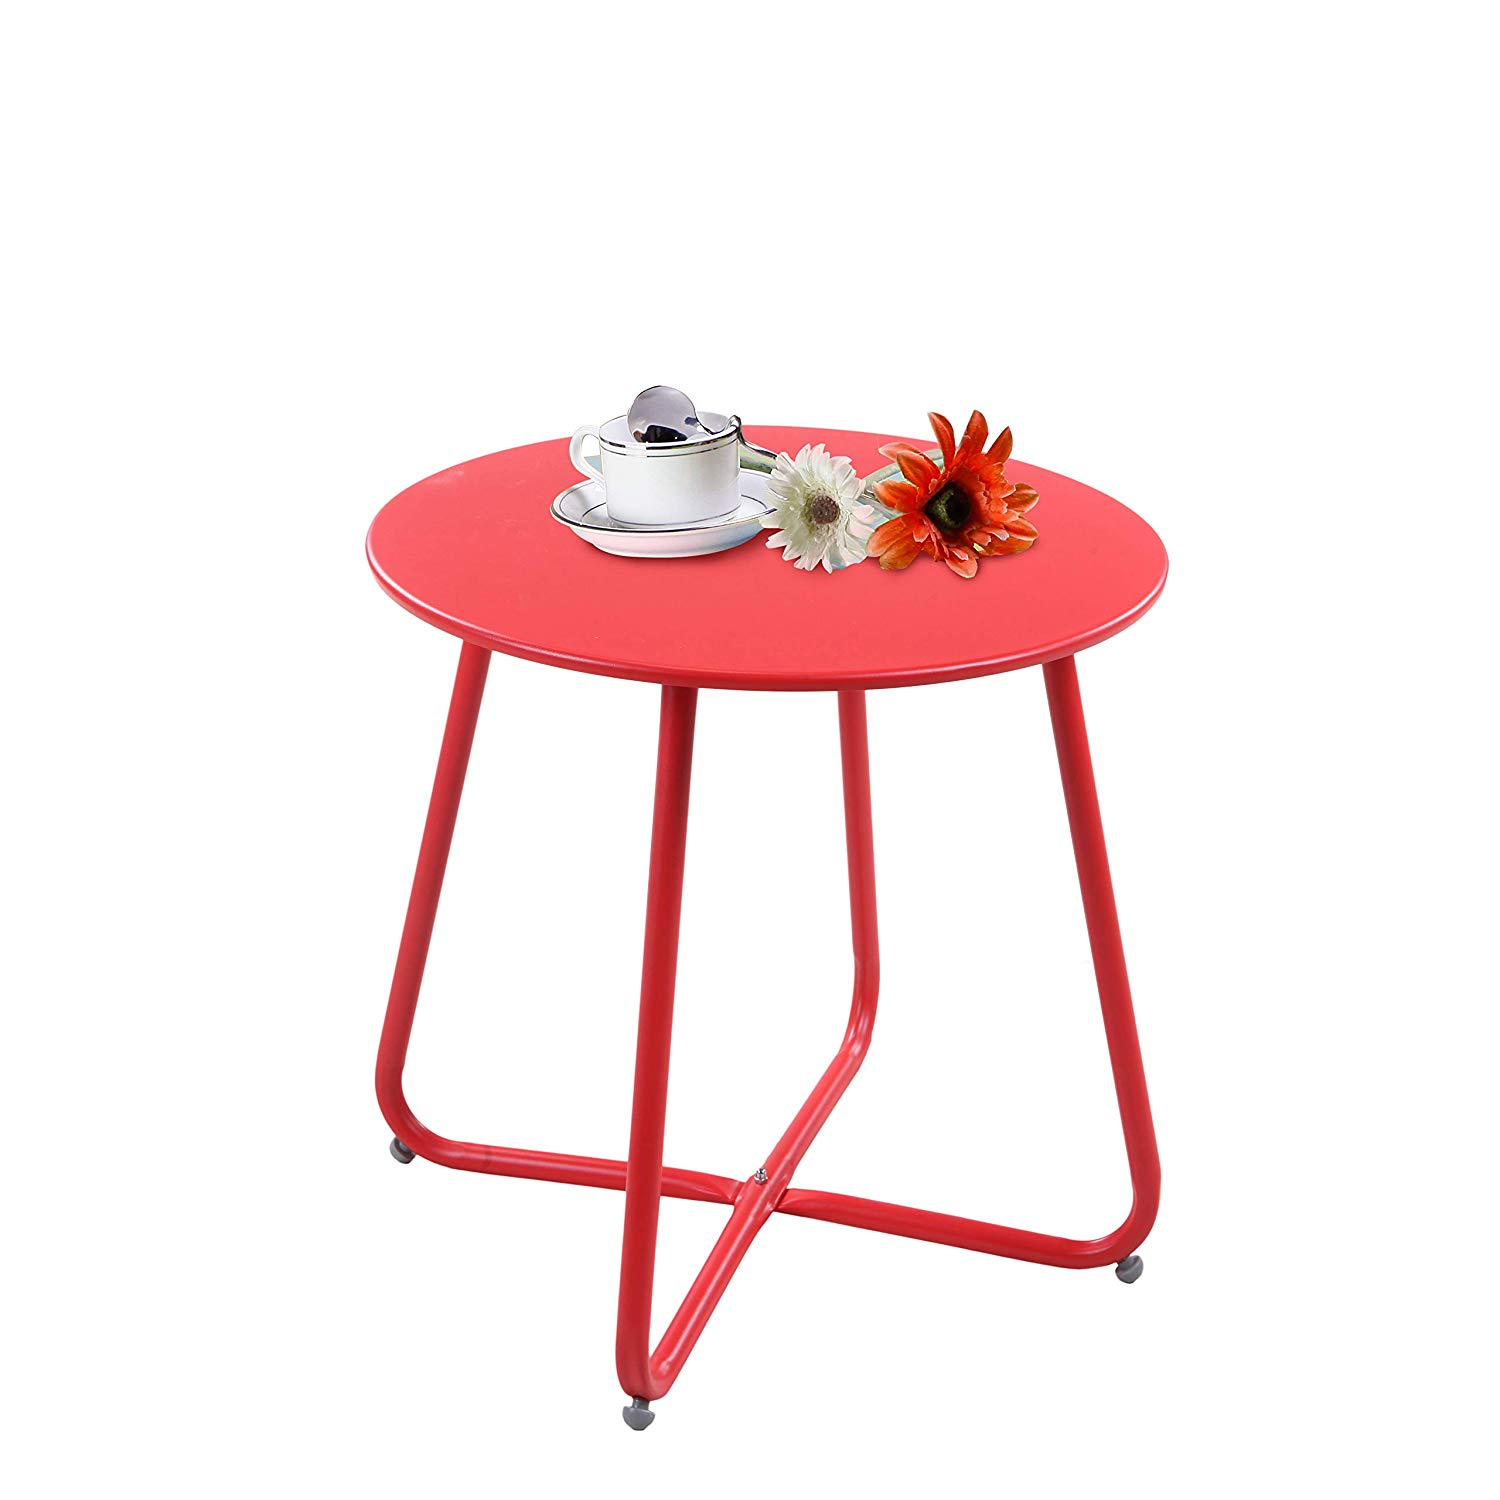 grand patio steel coffee table weather resistant red outdoor accent side small round end tables garden telephone and seat fold away desk lamps under purple tiffany style bistro